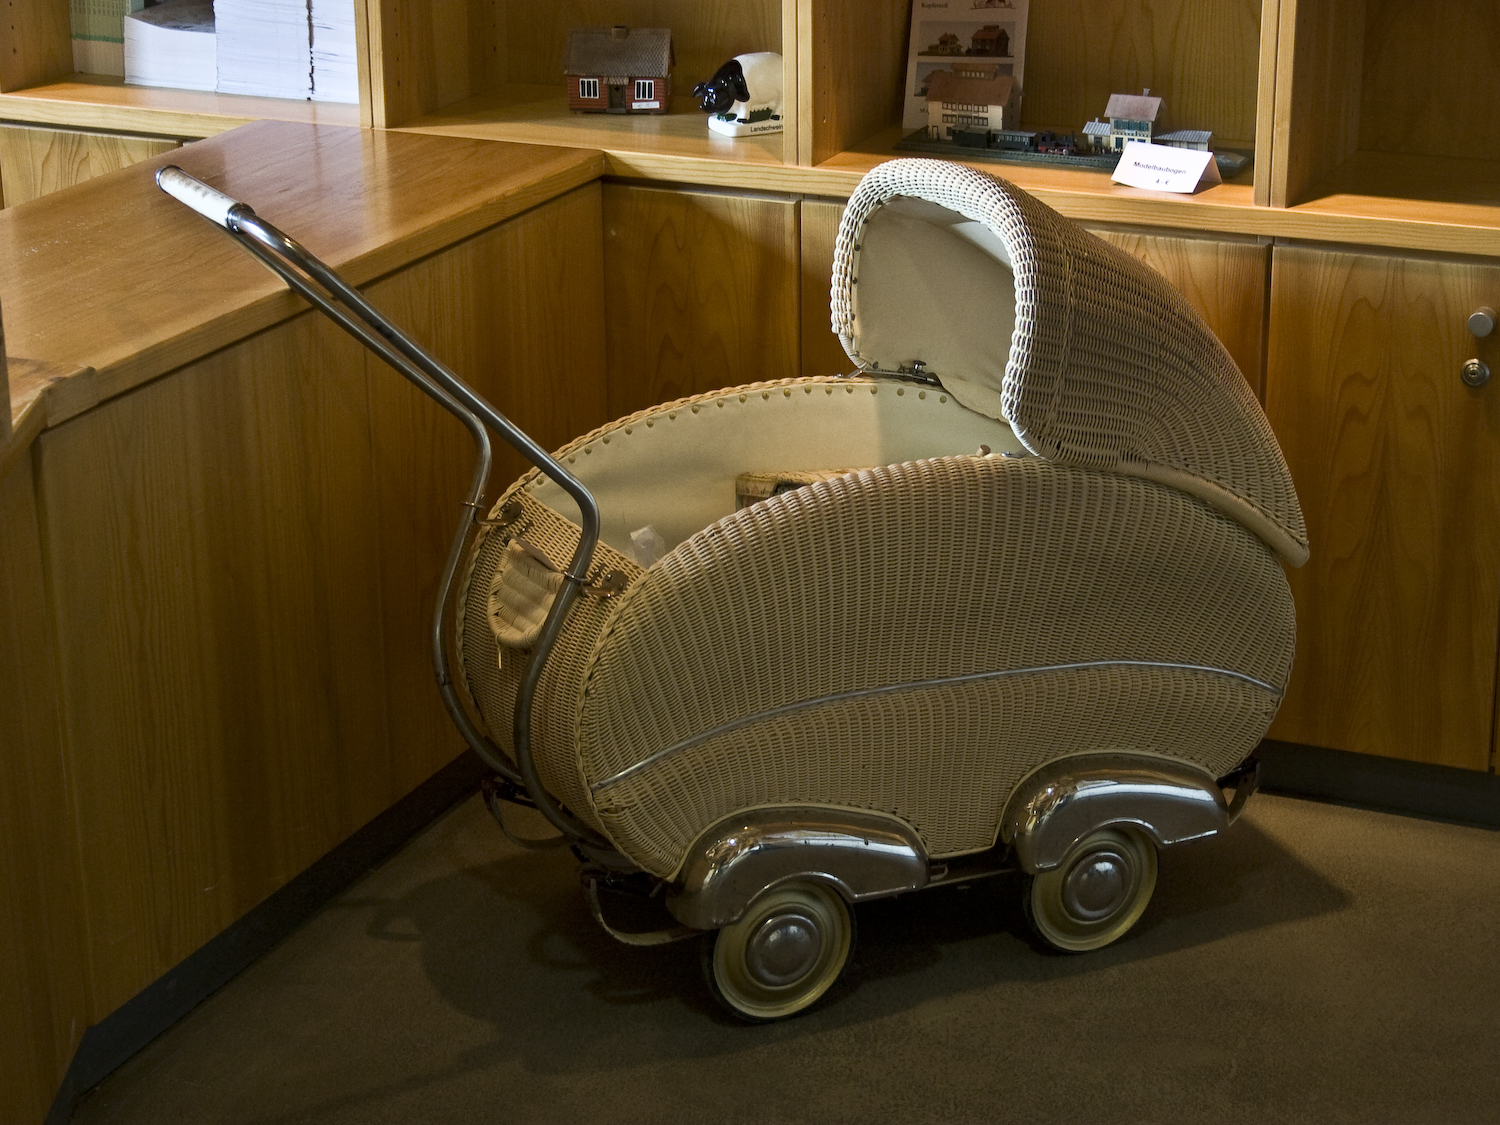 Vintage Toy Stroller Baby Transport Wikipedia